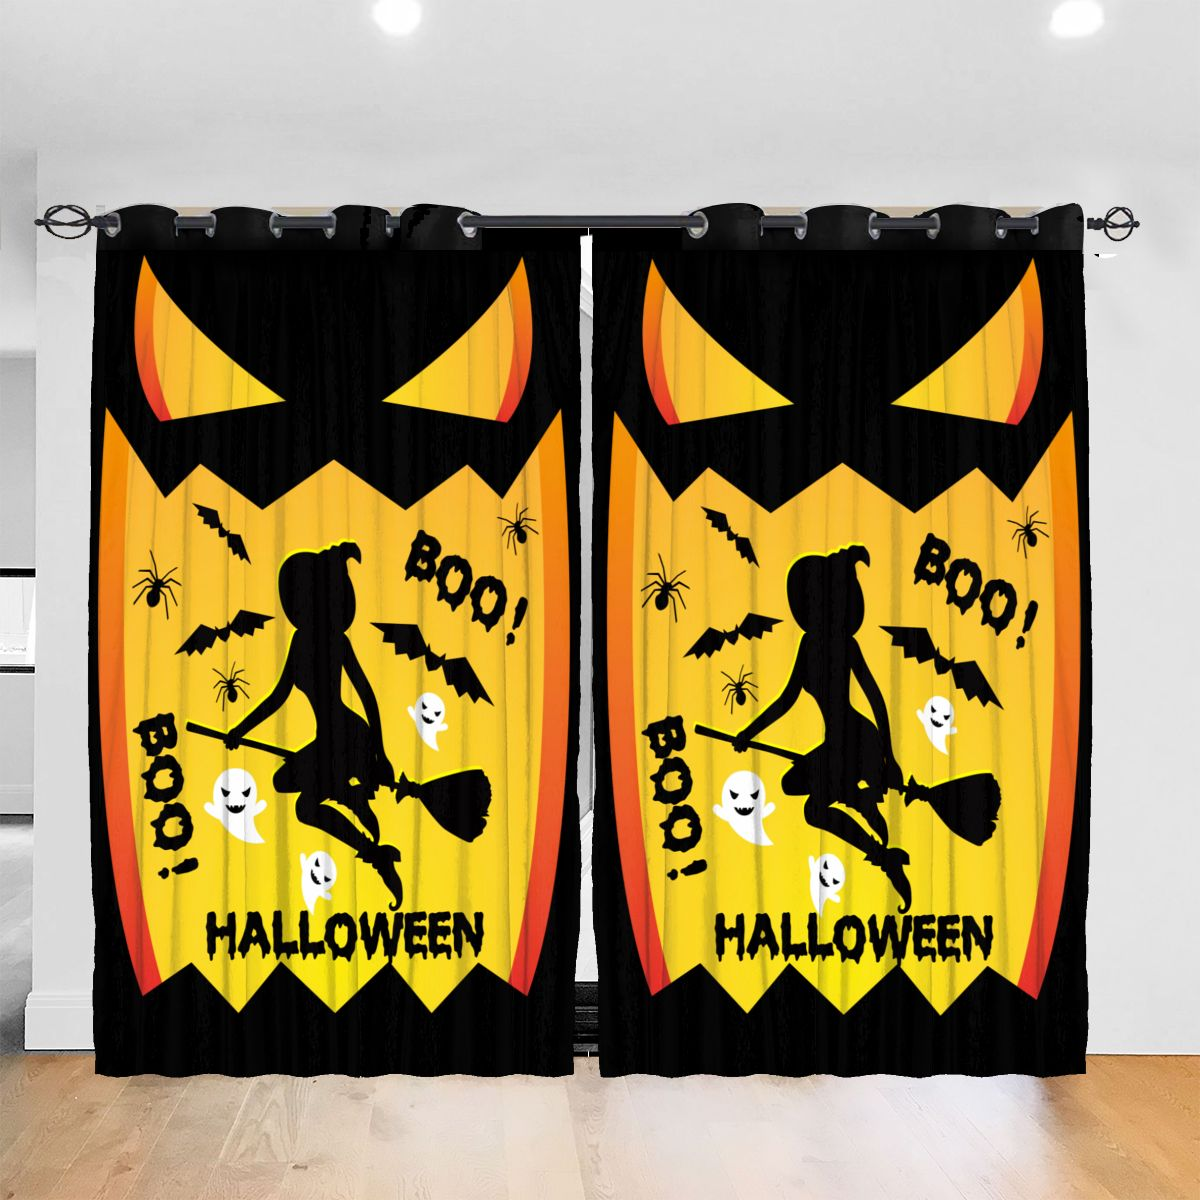 Living Room Sun Block Curtain Witches LOVELY Vintage SALLY Halloween BOO Light Shading Bedroom Blackout Window Curtains 52x72In